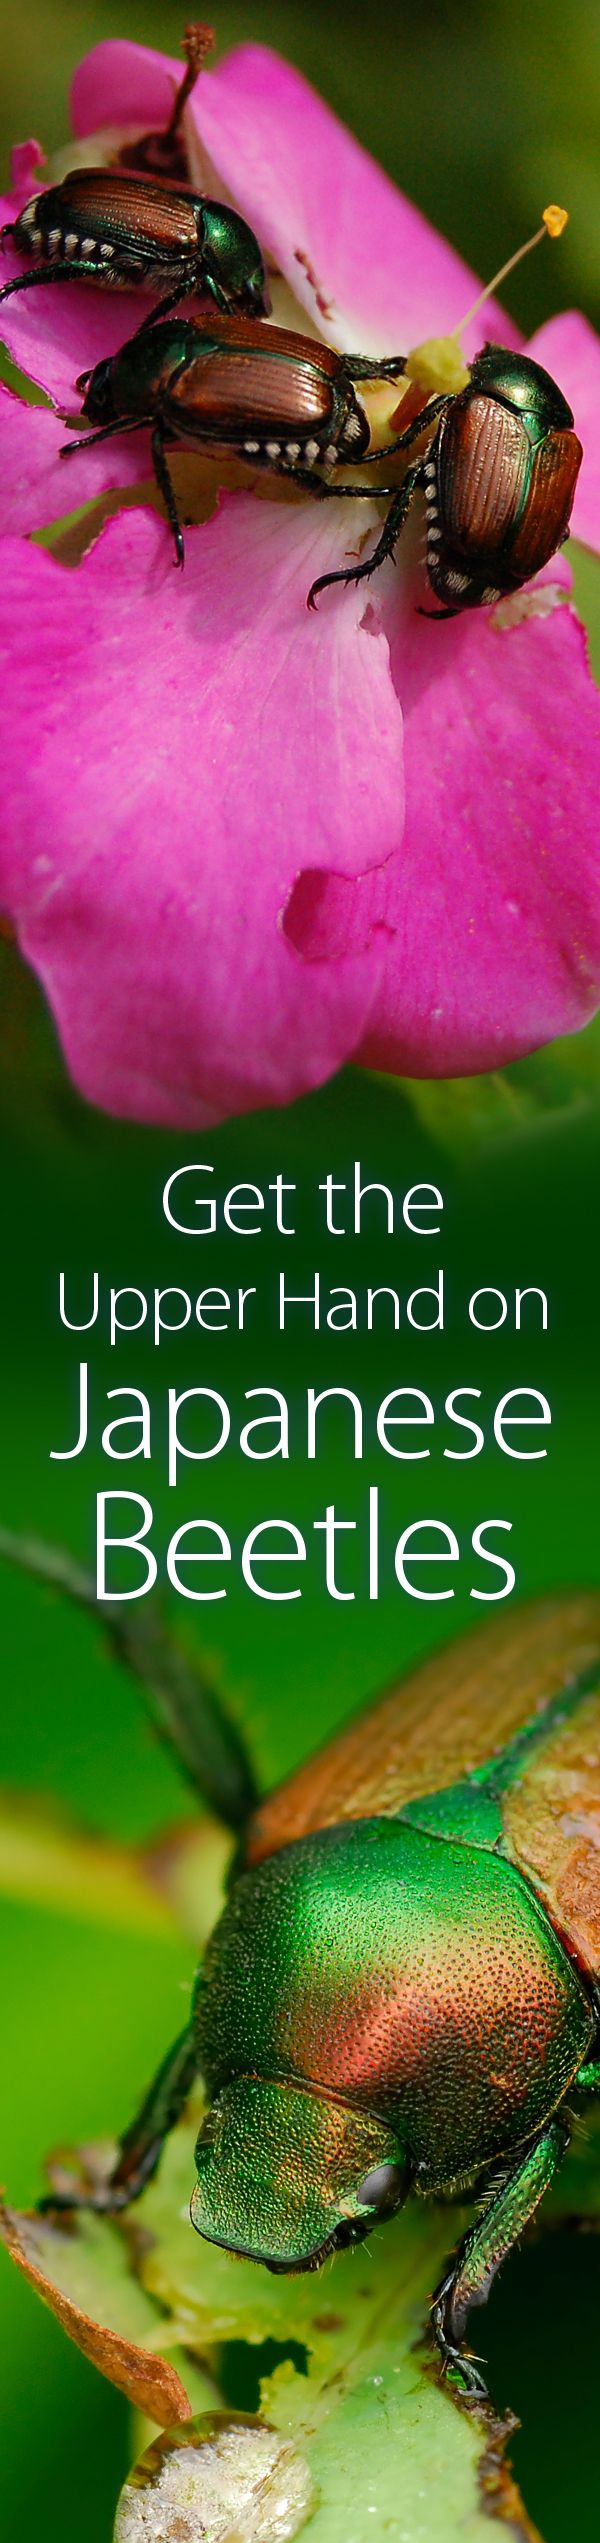 Few garden pests match the destructive power of Japanese beetles. This is a great article on how to keep Japanese Beetles from ruining your garden. #JapaneseBeetles #Gardening